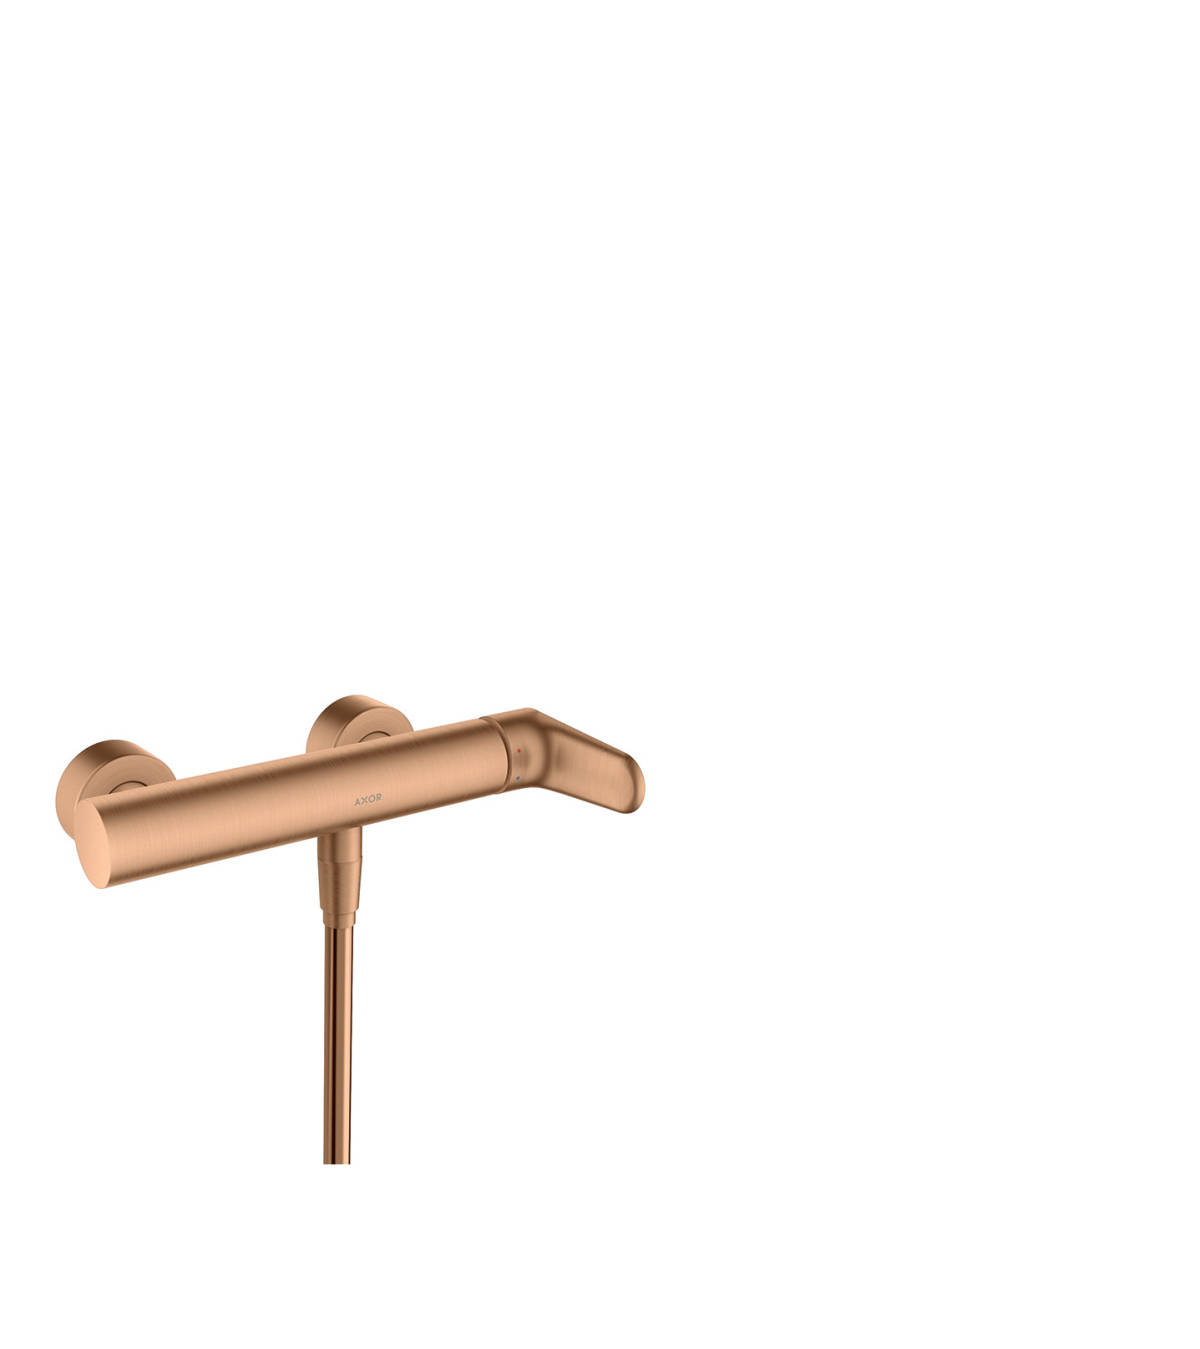 Single lever shower mixer for exposed installation, Brushed Bronze, 34620140